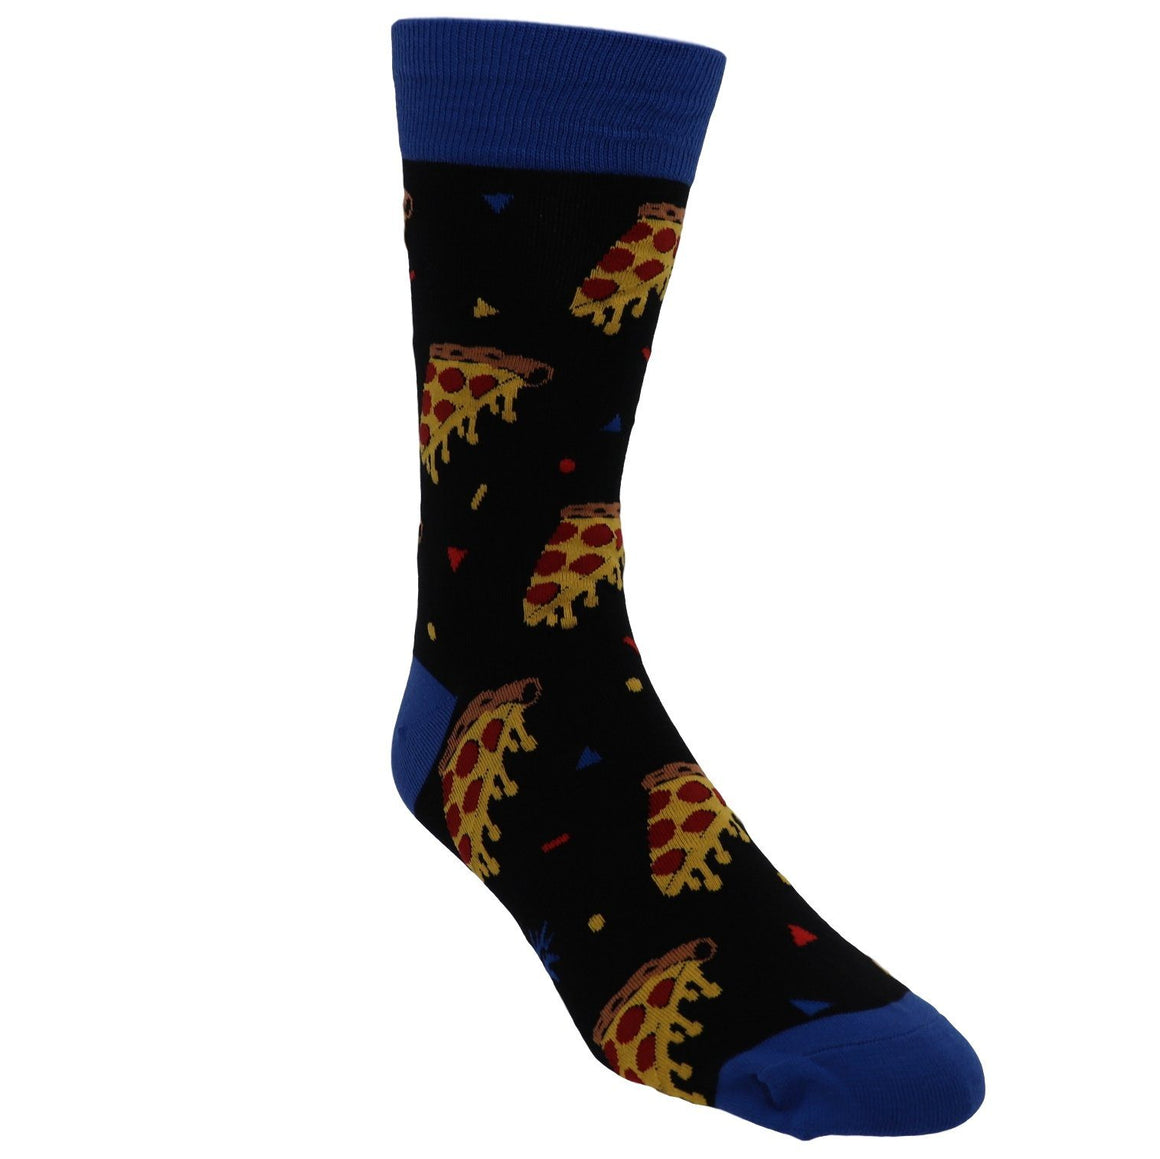 Pizza Party Men's Socks by Sock it to Me - The Sock Spot